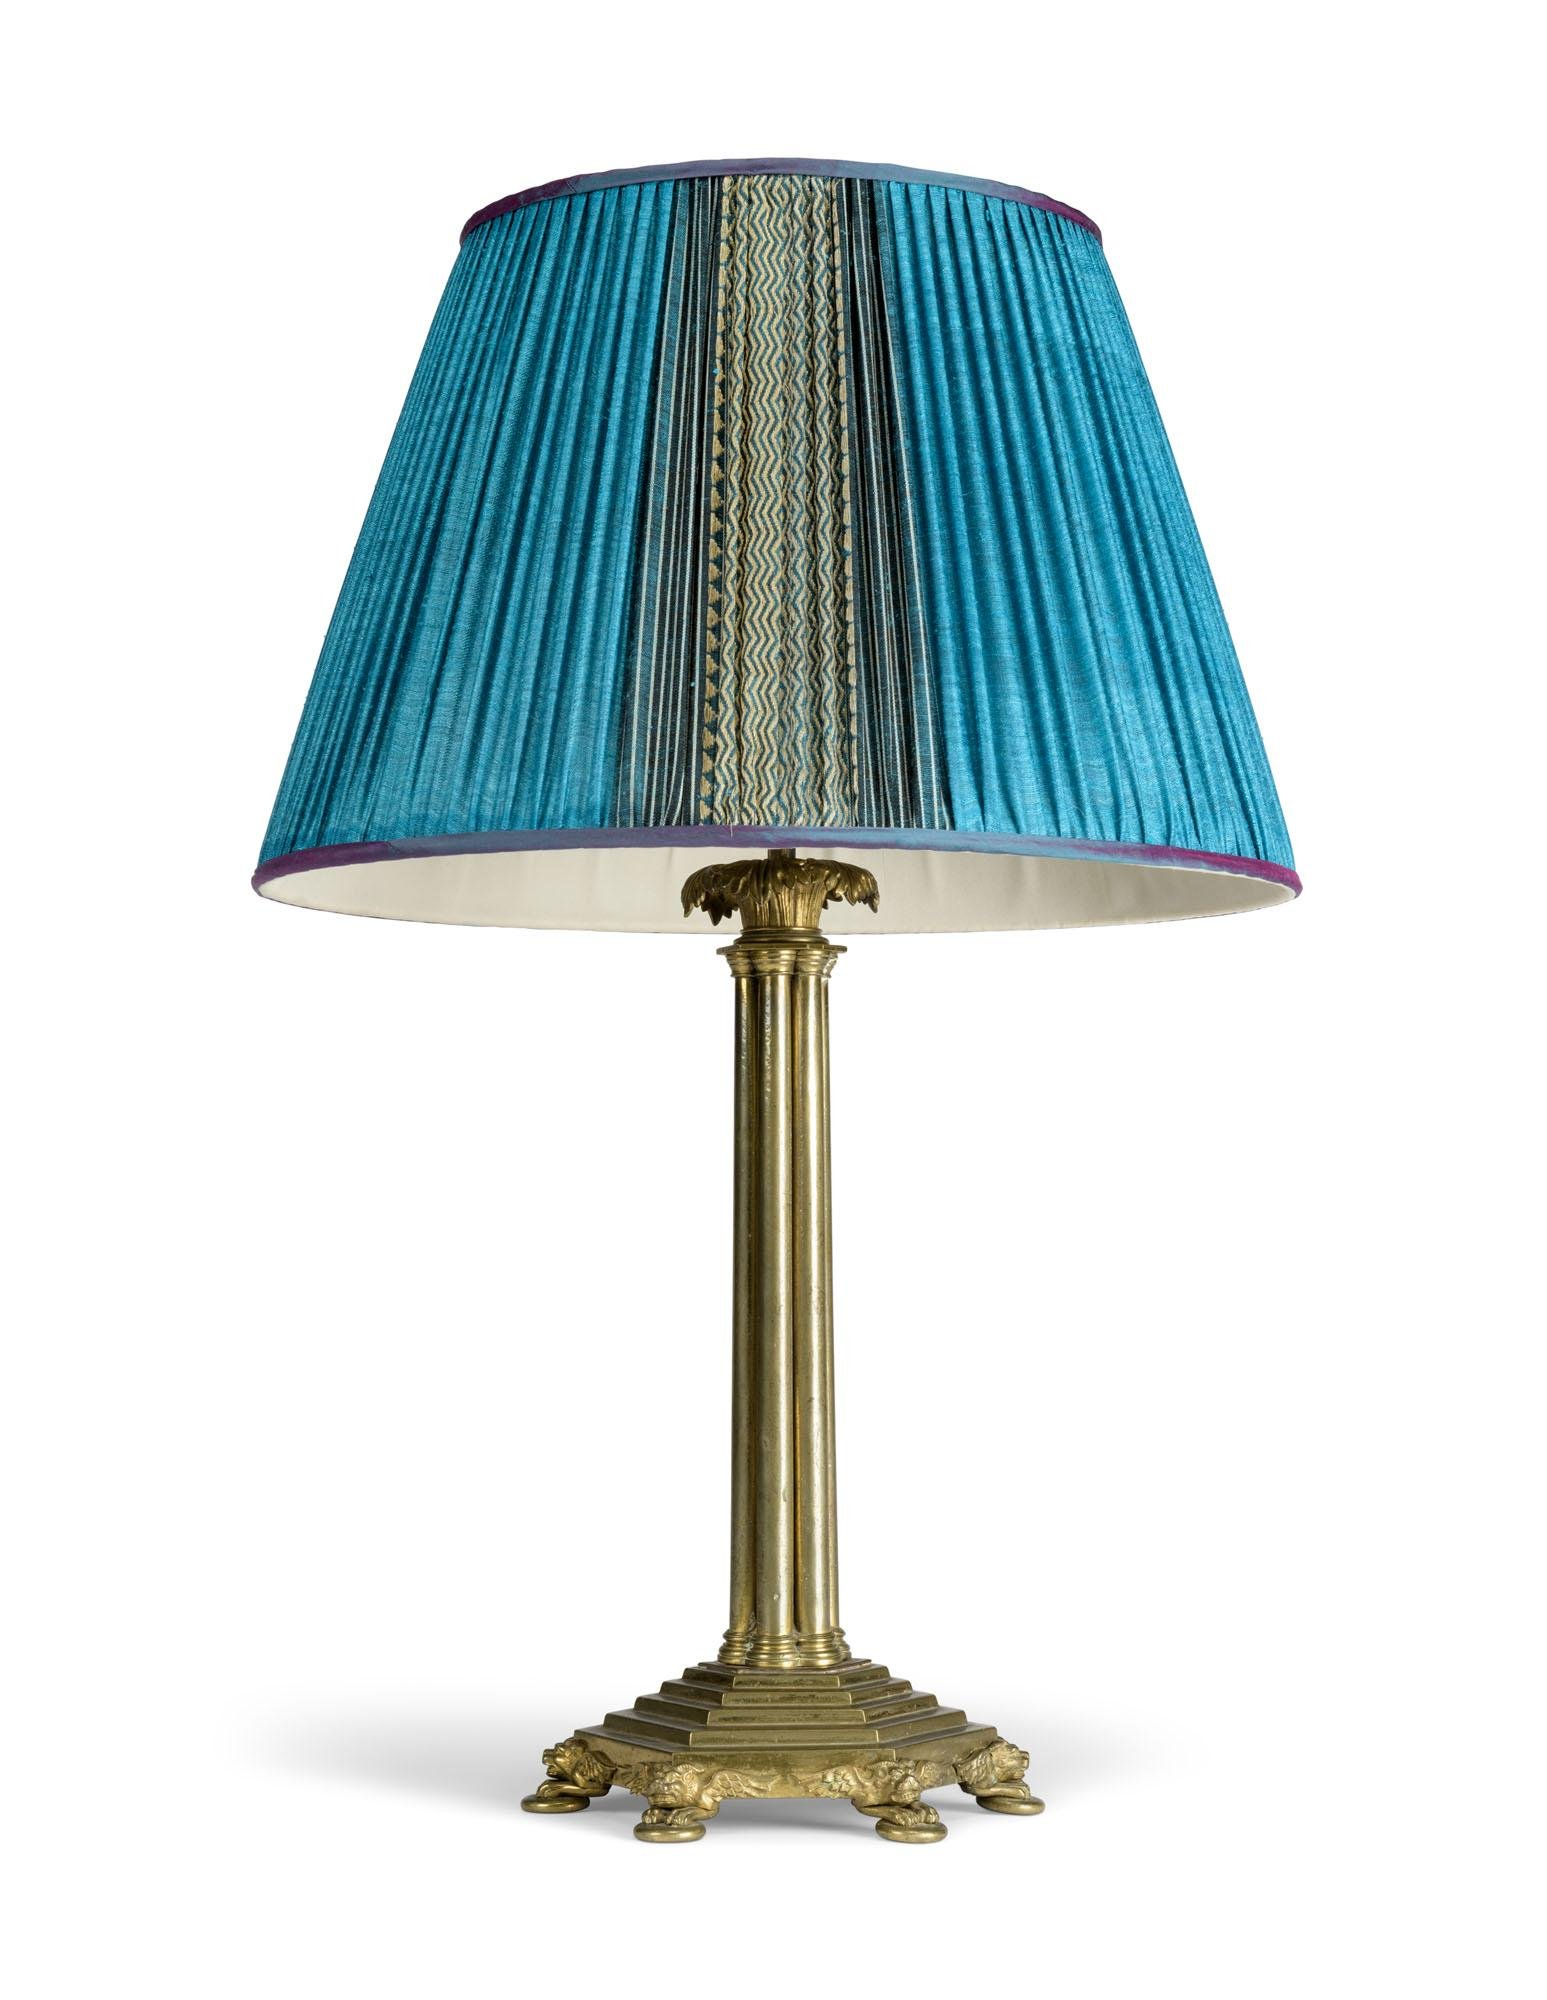 A LACQUERED-BRASS LAMP